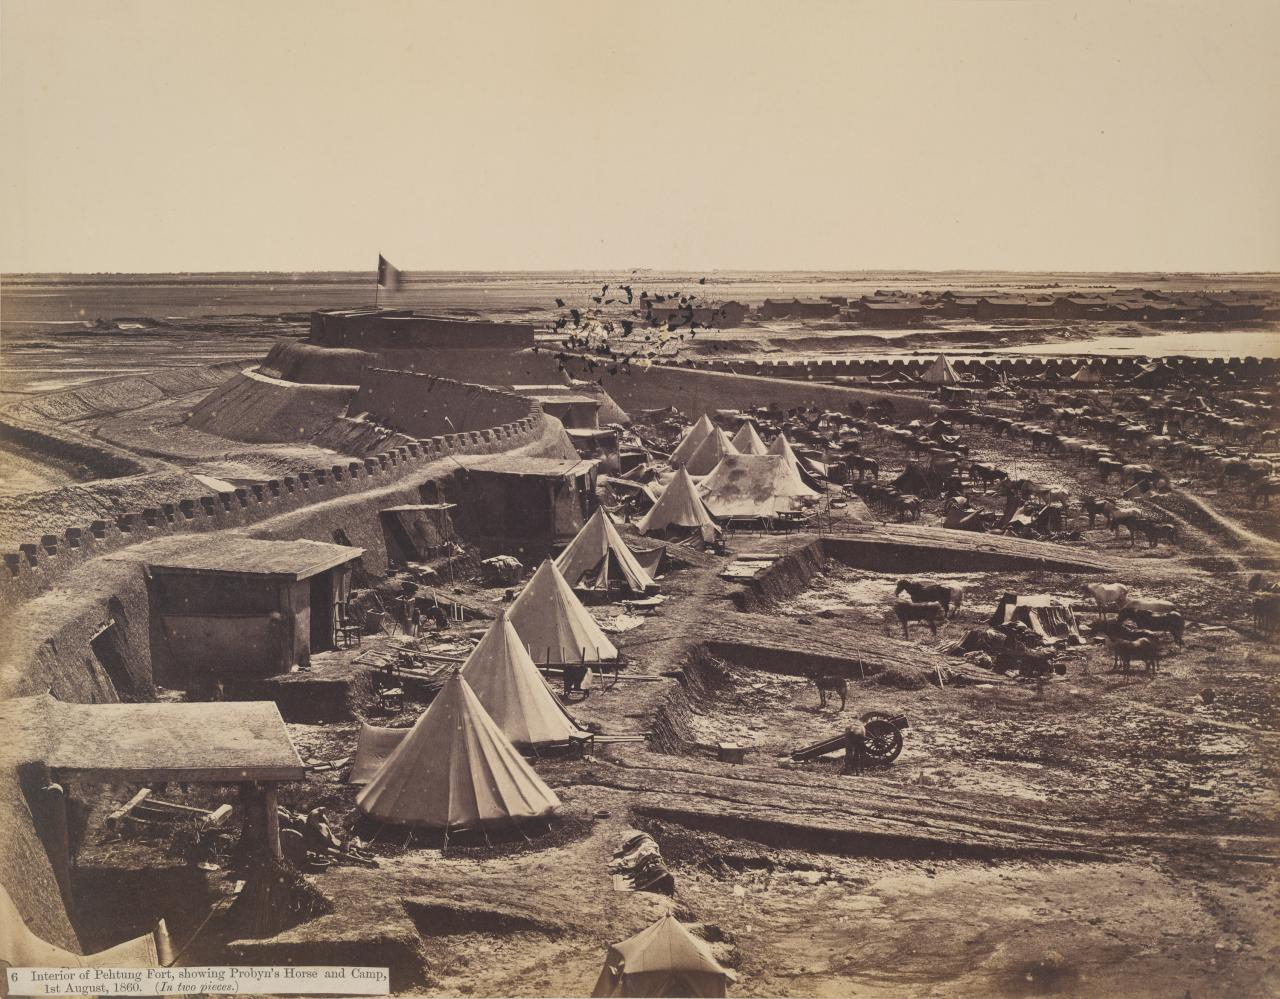 Interior of Pehtung Fort, showing Probyn's horse and camp, 1st August, 1860